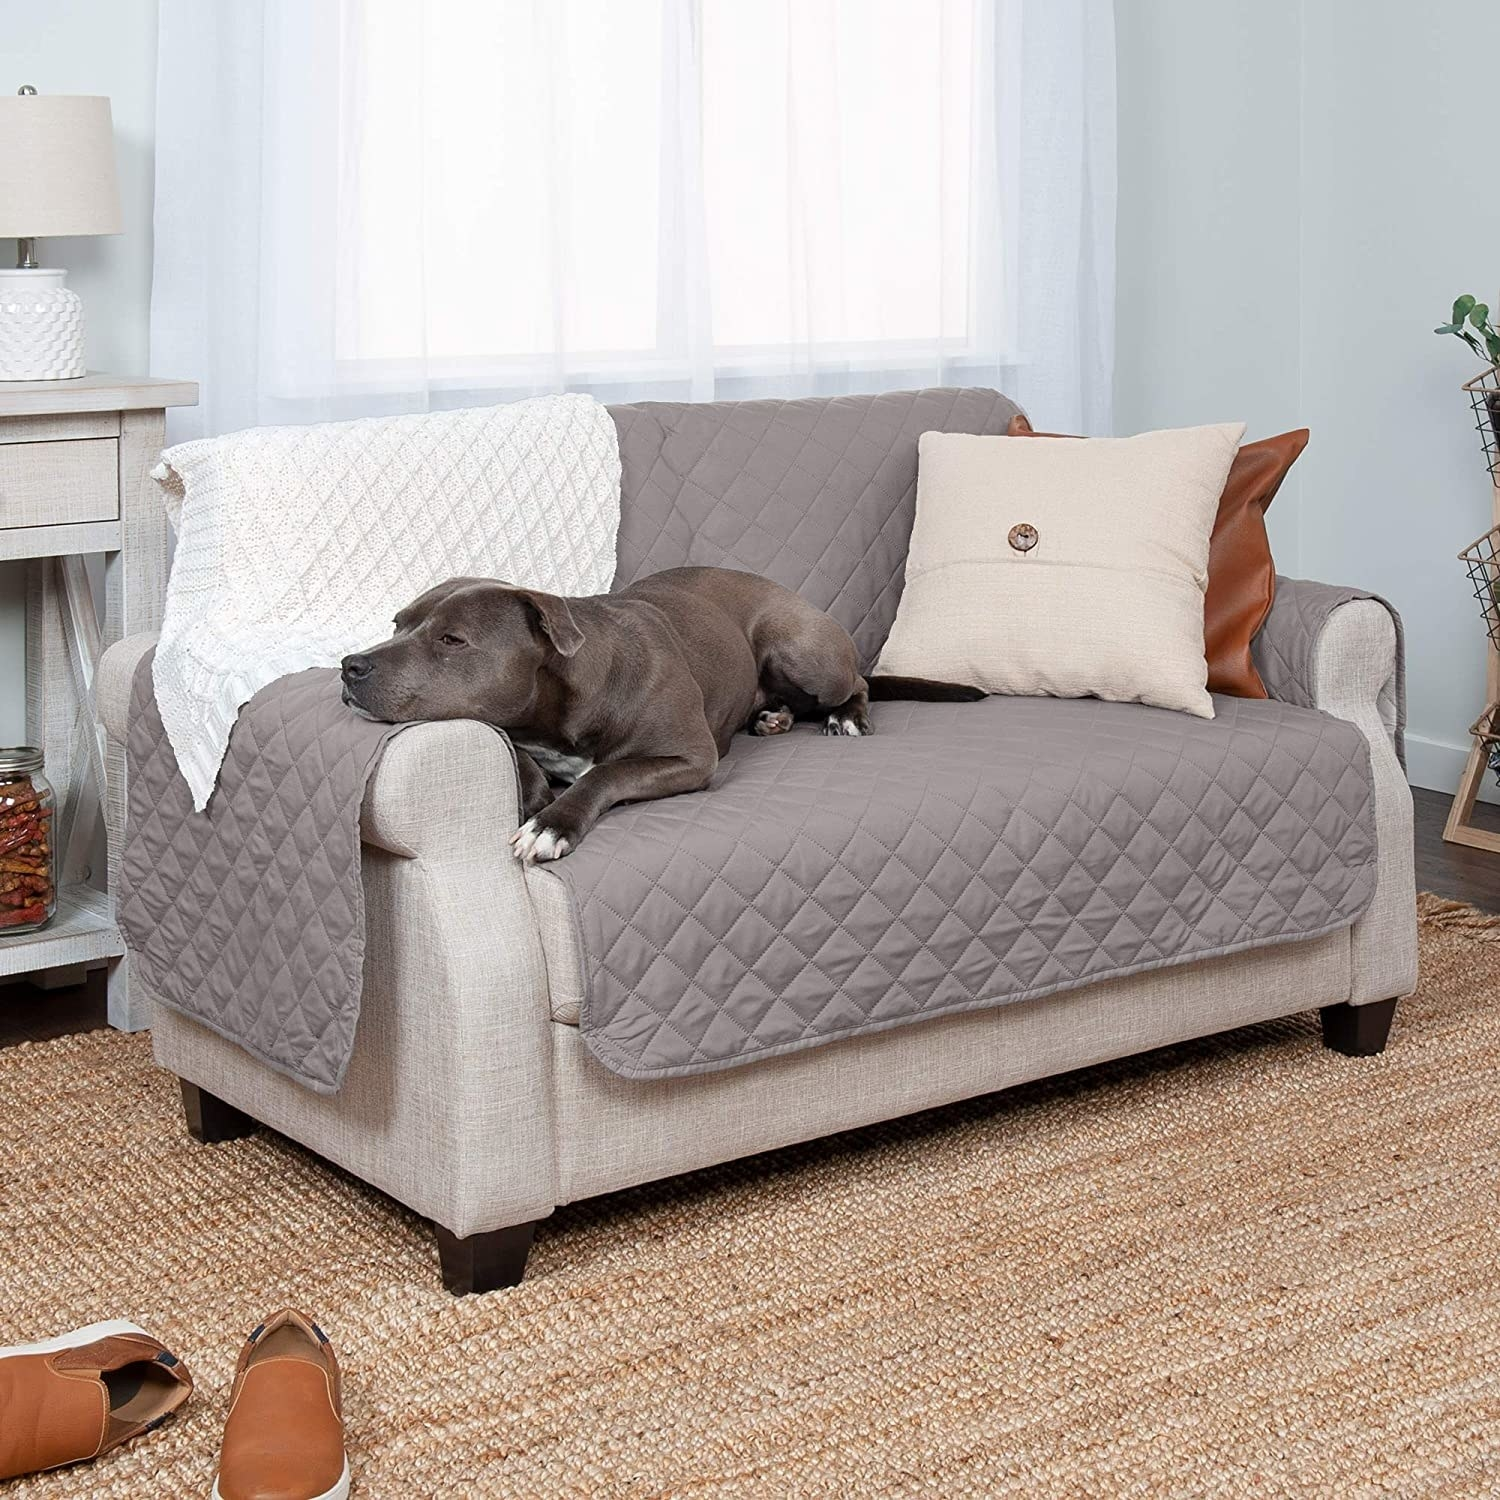 a dog resting on a couch with a couch cover on it